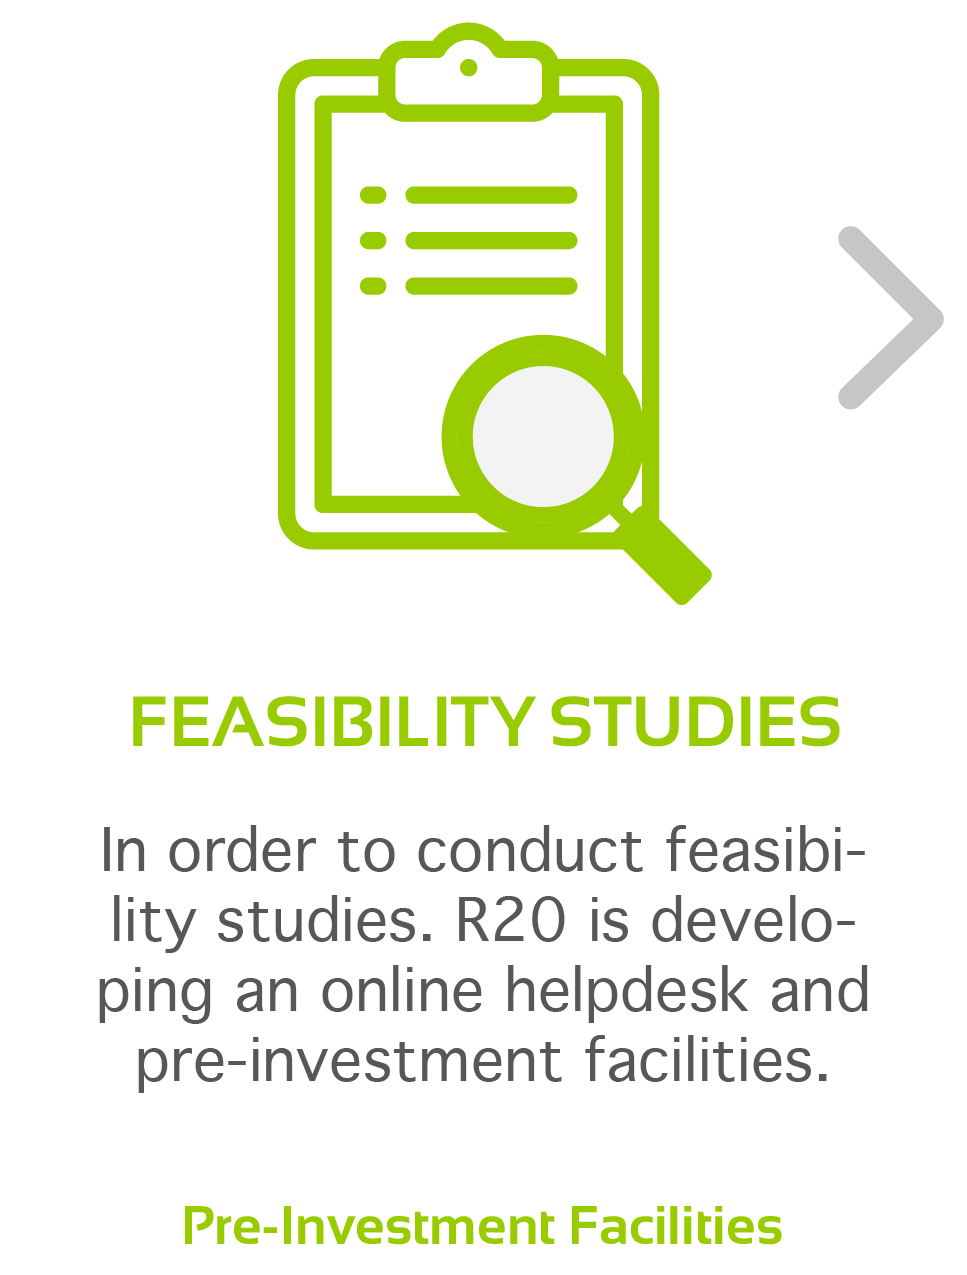 r20-picto-feasibility-studies-01